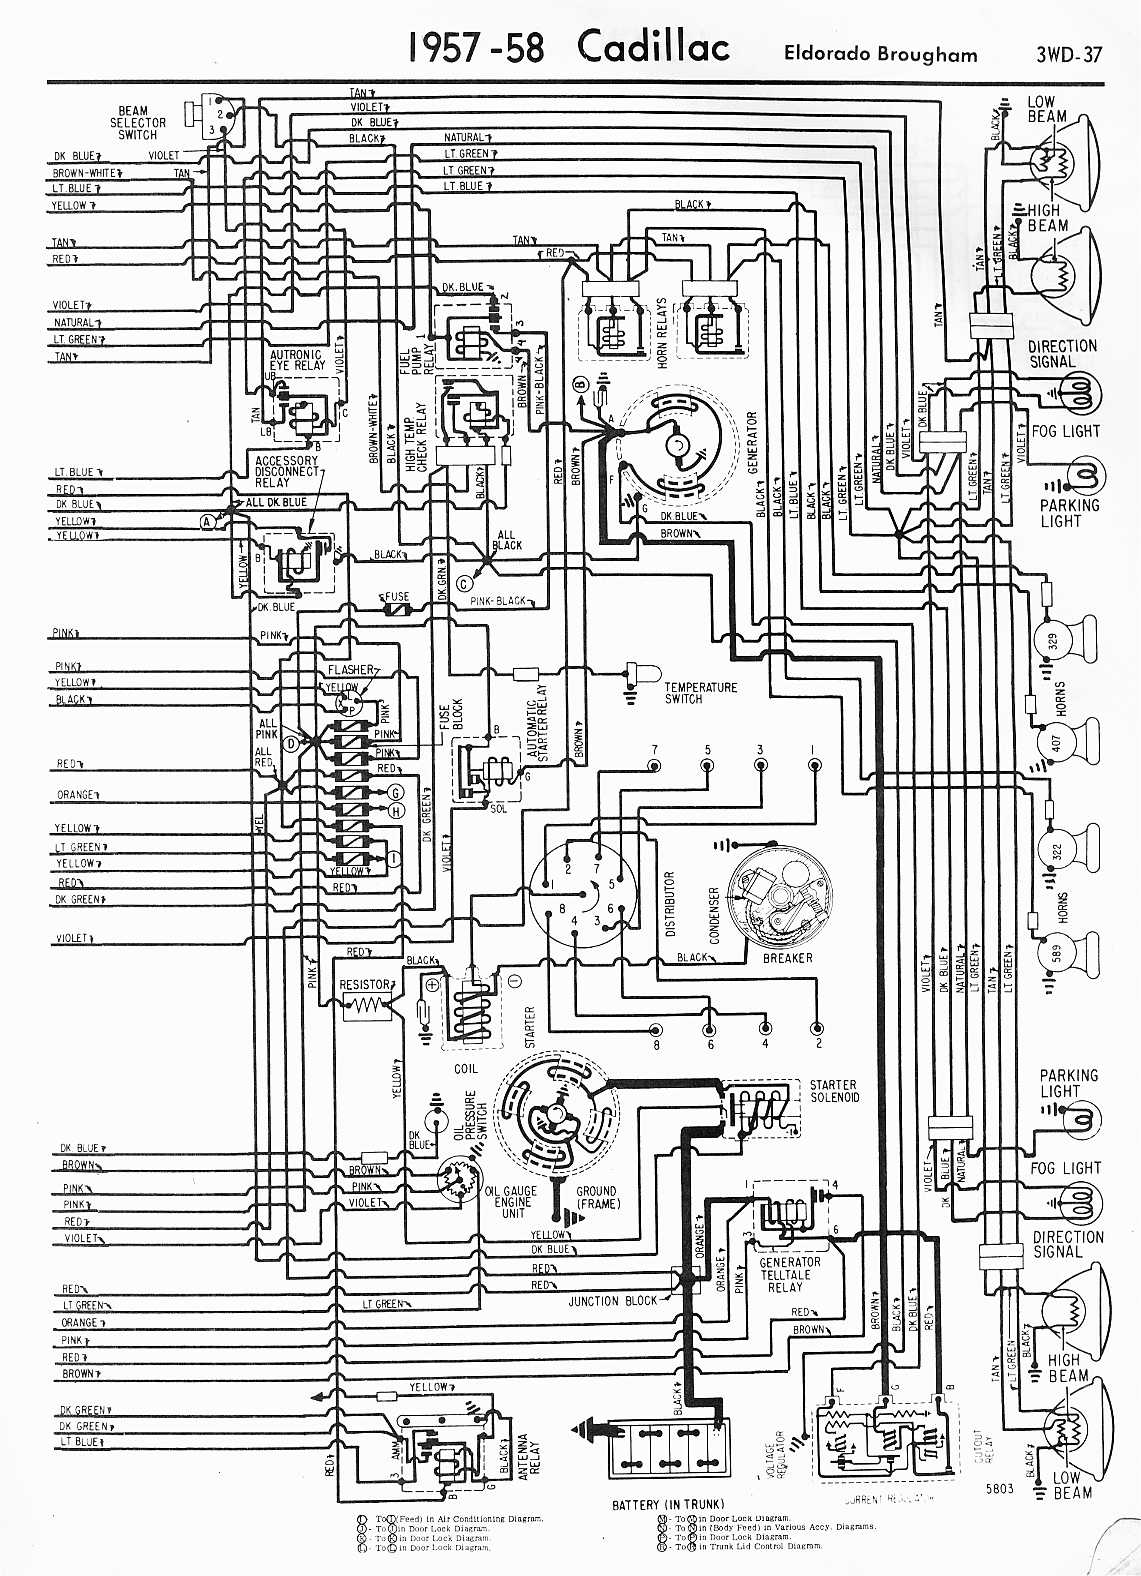 1962 Cadillac Vacuum Diagram Reinvent Your Wiring 1987 Corvette Diagrams Eldorado Detailed Schematics Rh Keyplusrubber Com 1964